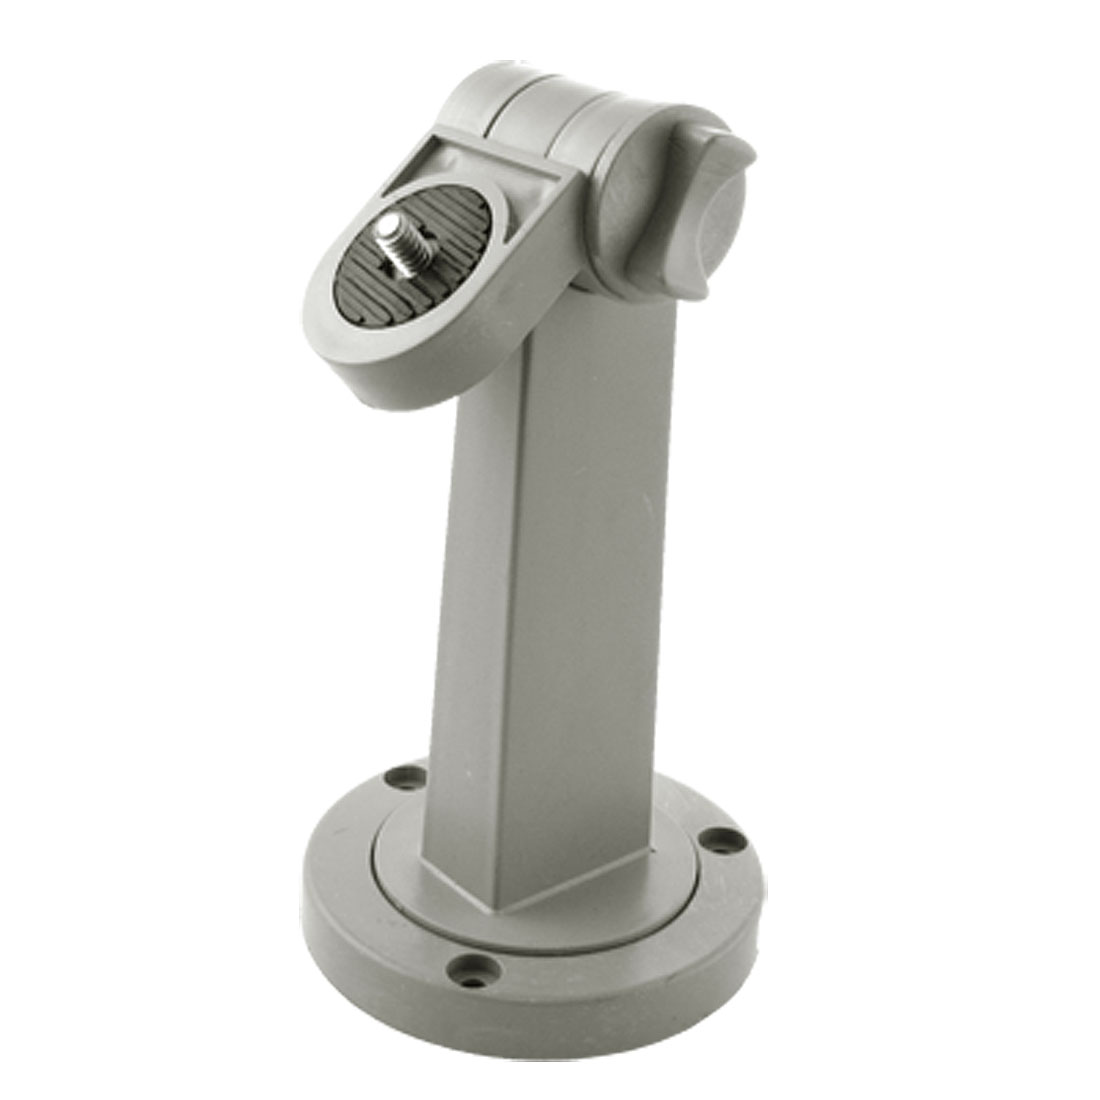 CCTV Security Camera Gray Plastic Wall Mounting Bracket